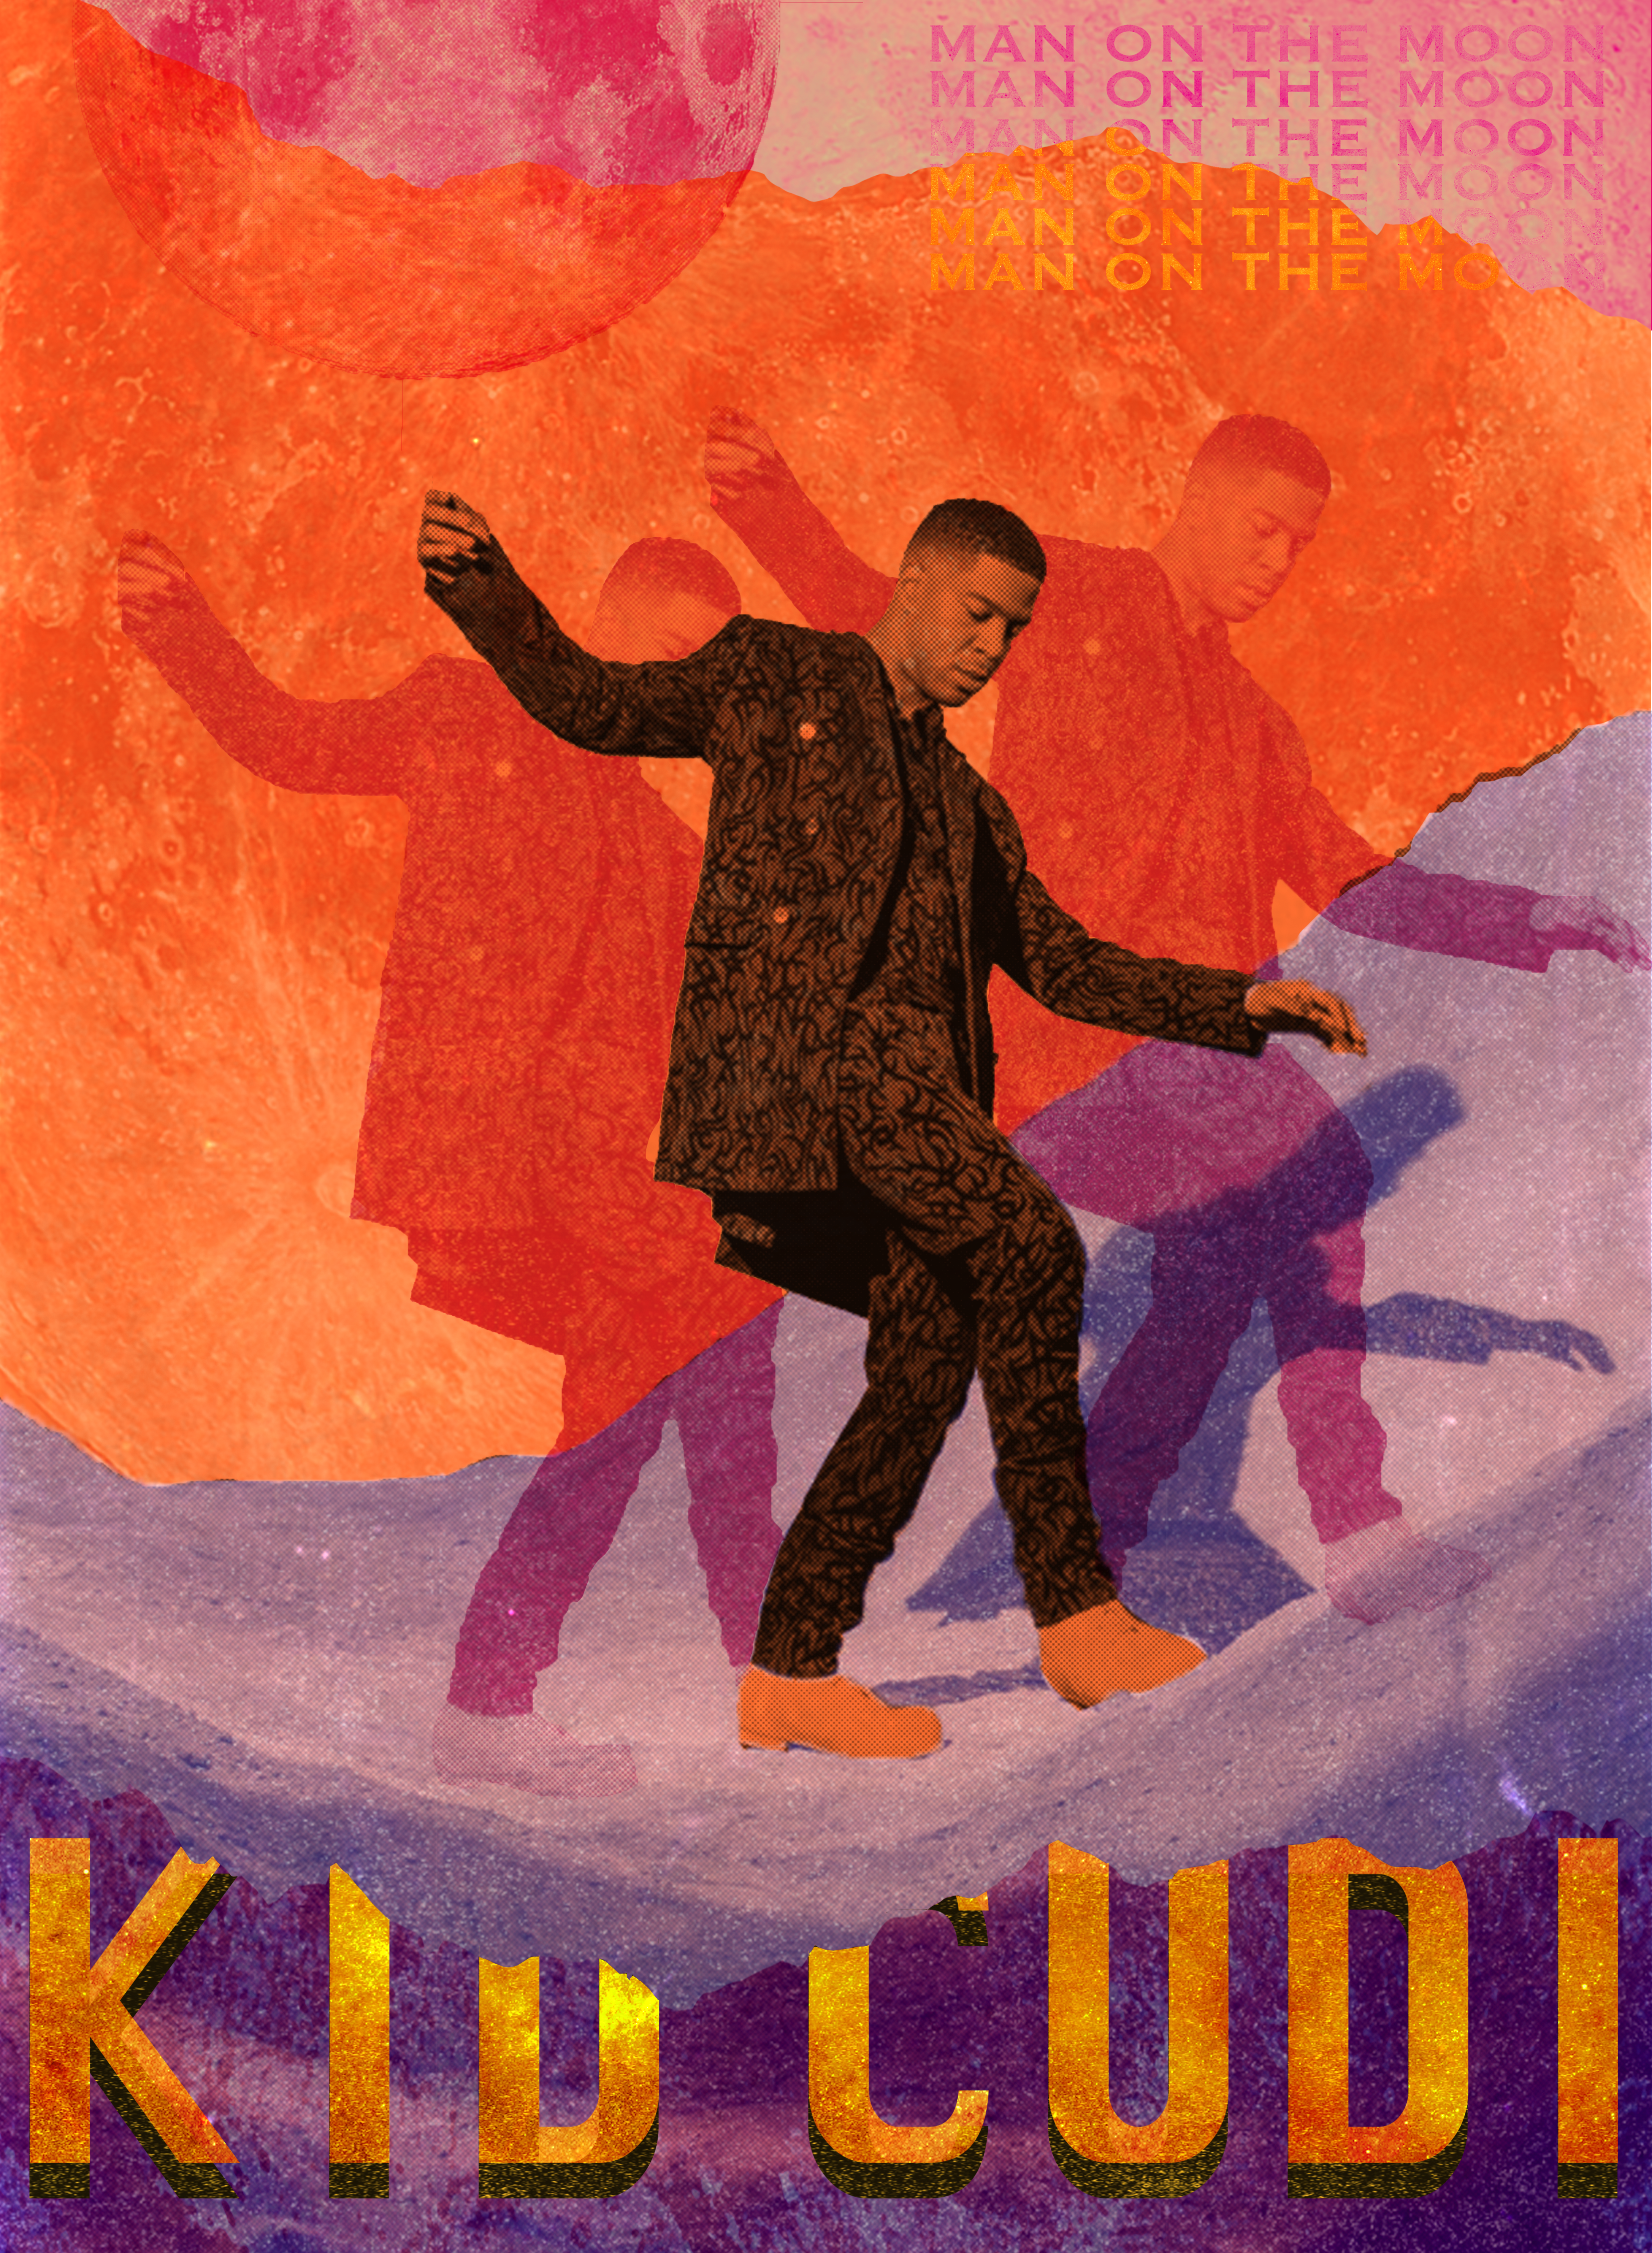 Kid Cudi Picture Collage Wall Art Collage Wall Kid Cudi Poster